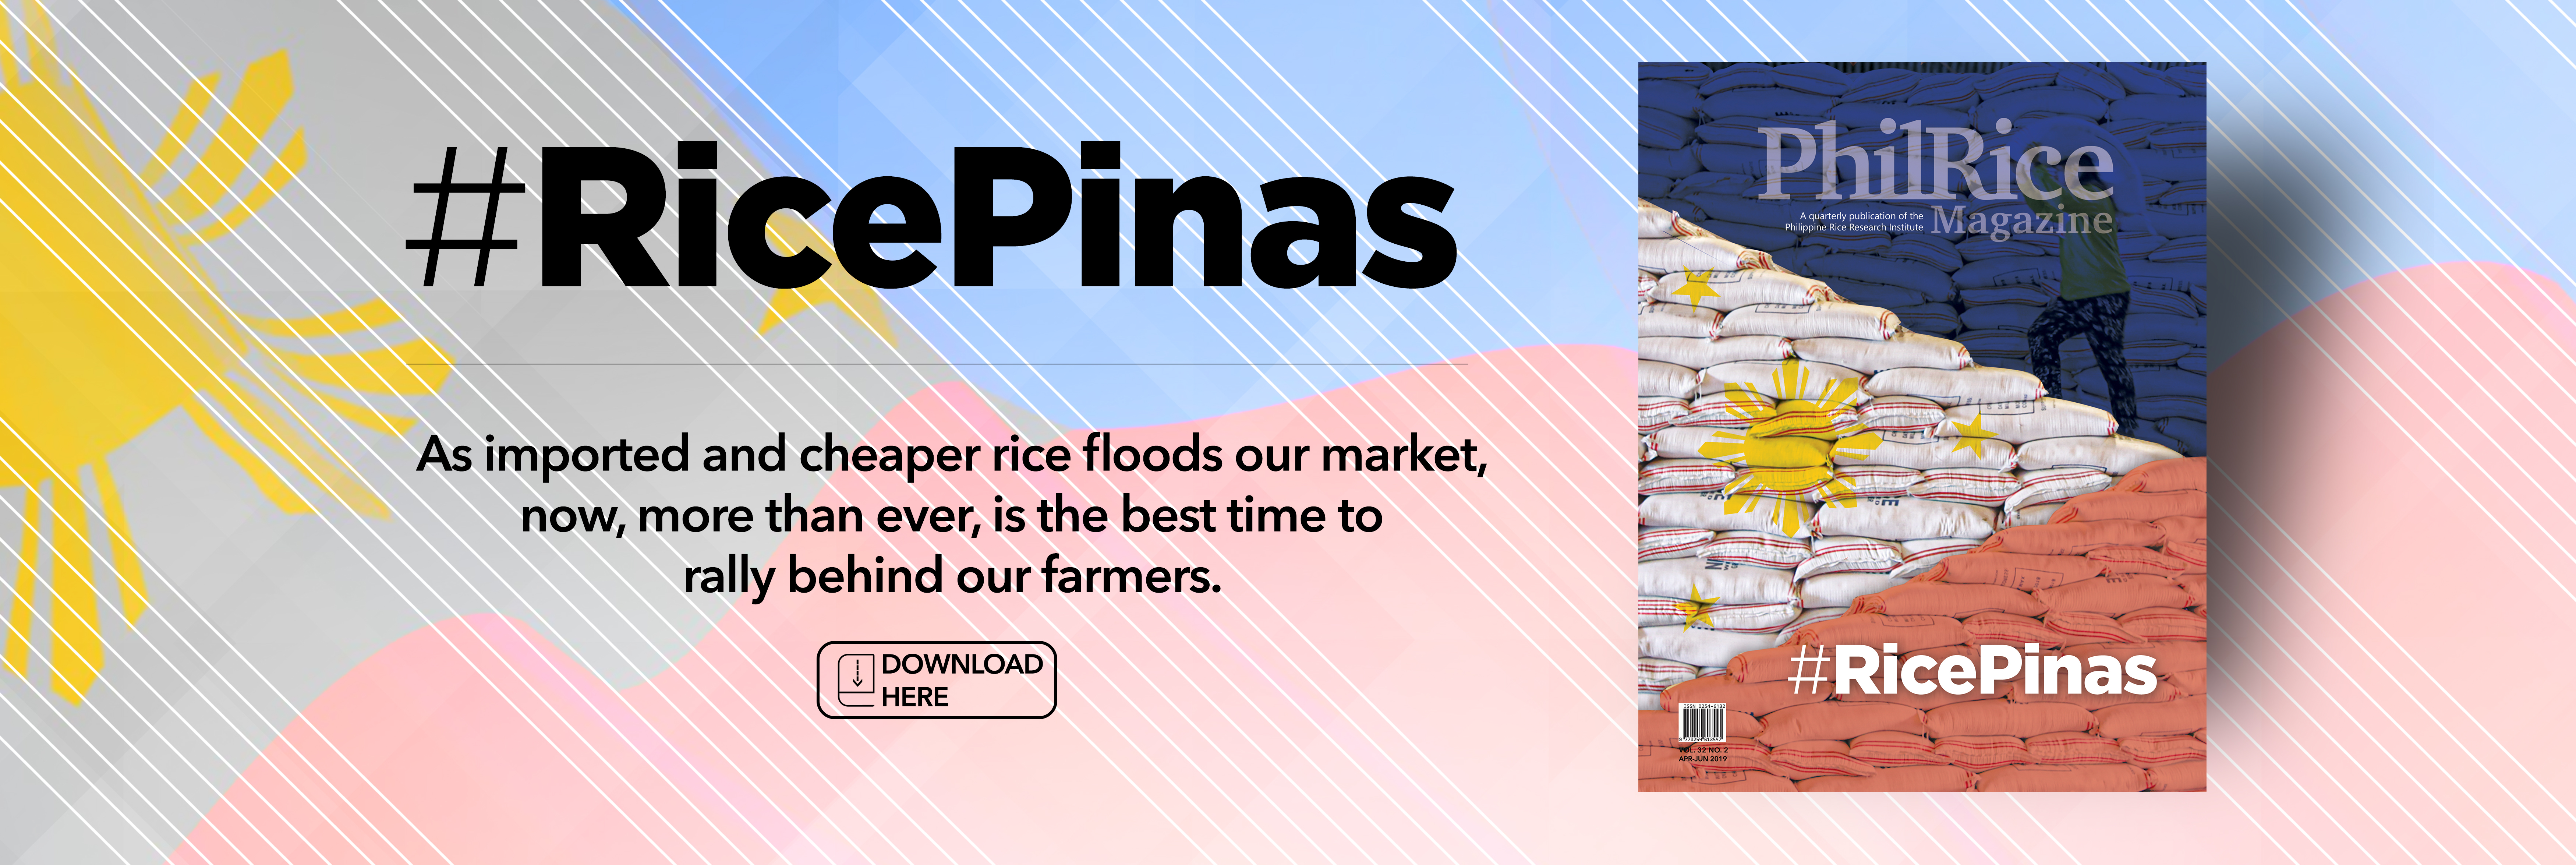 Philippine Rice Research Institute - : Philippine Rice